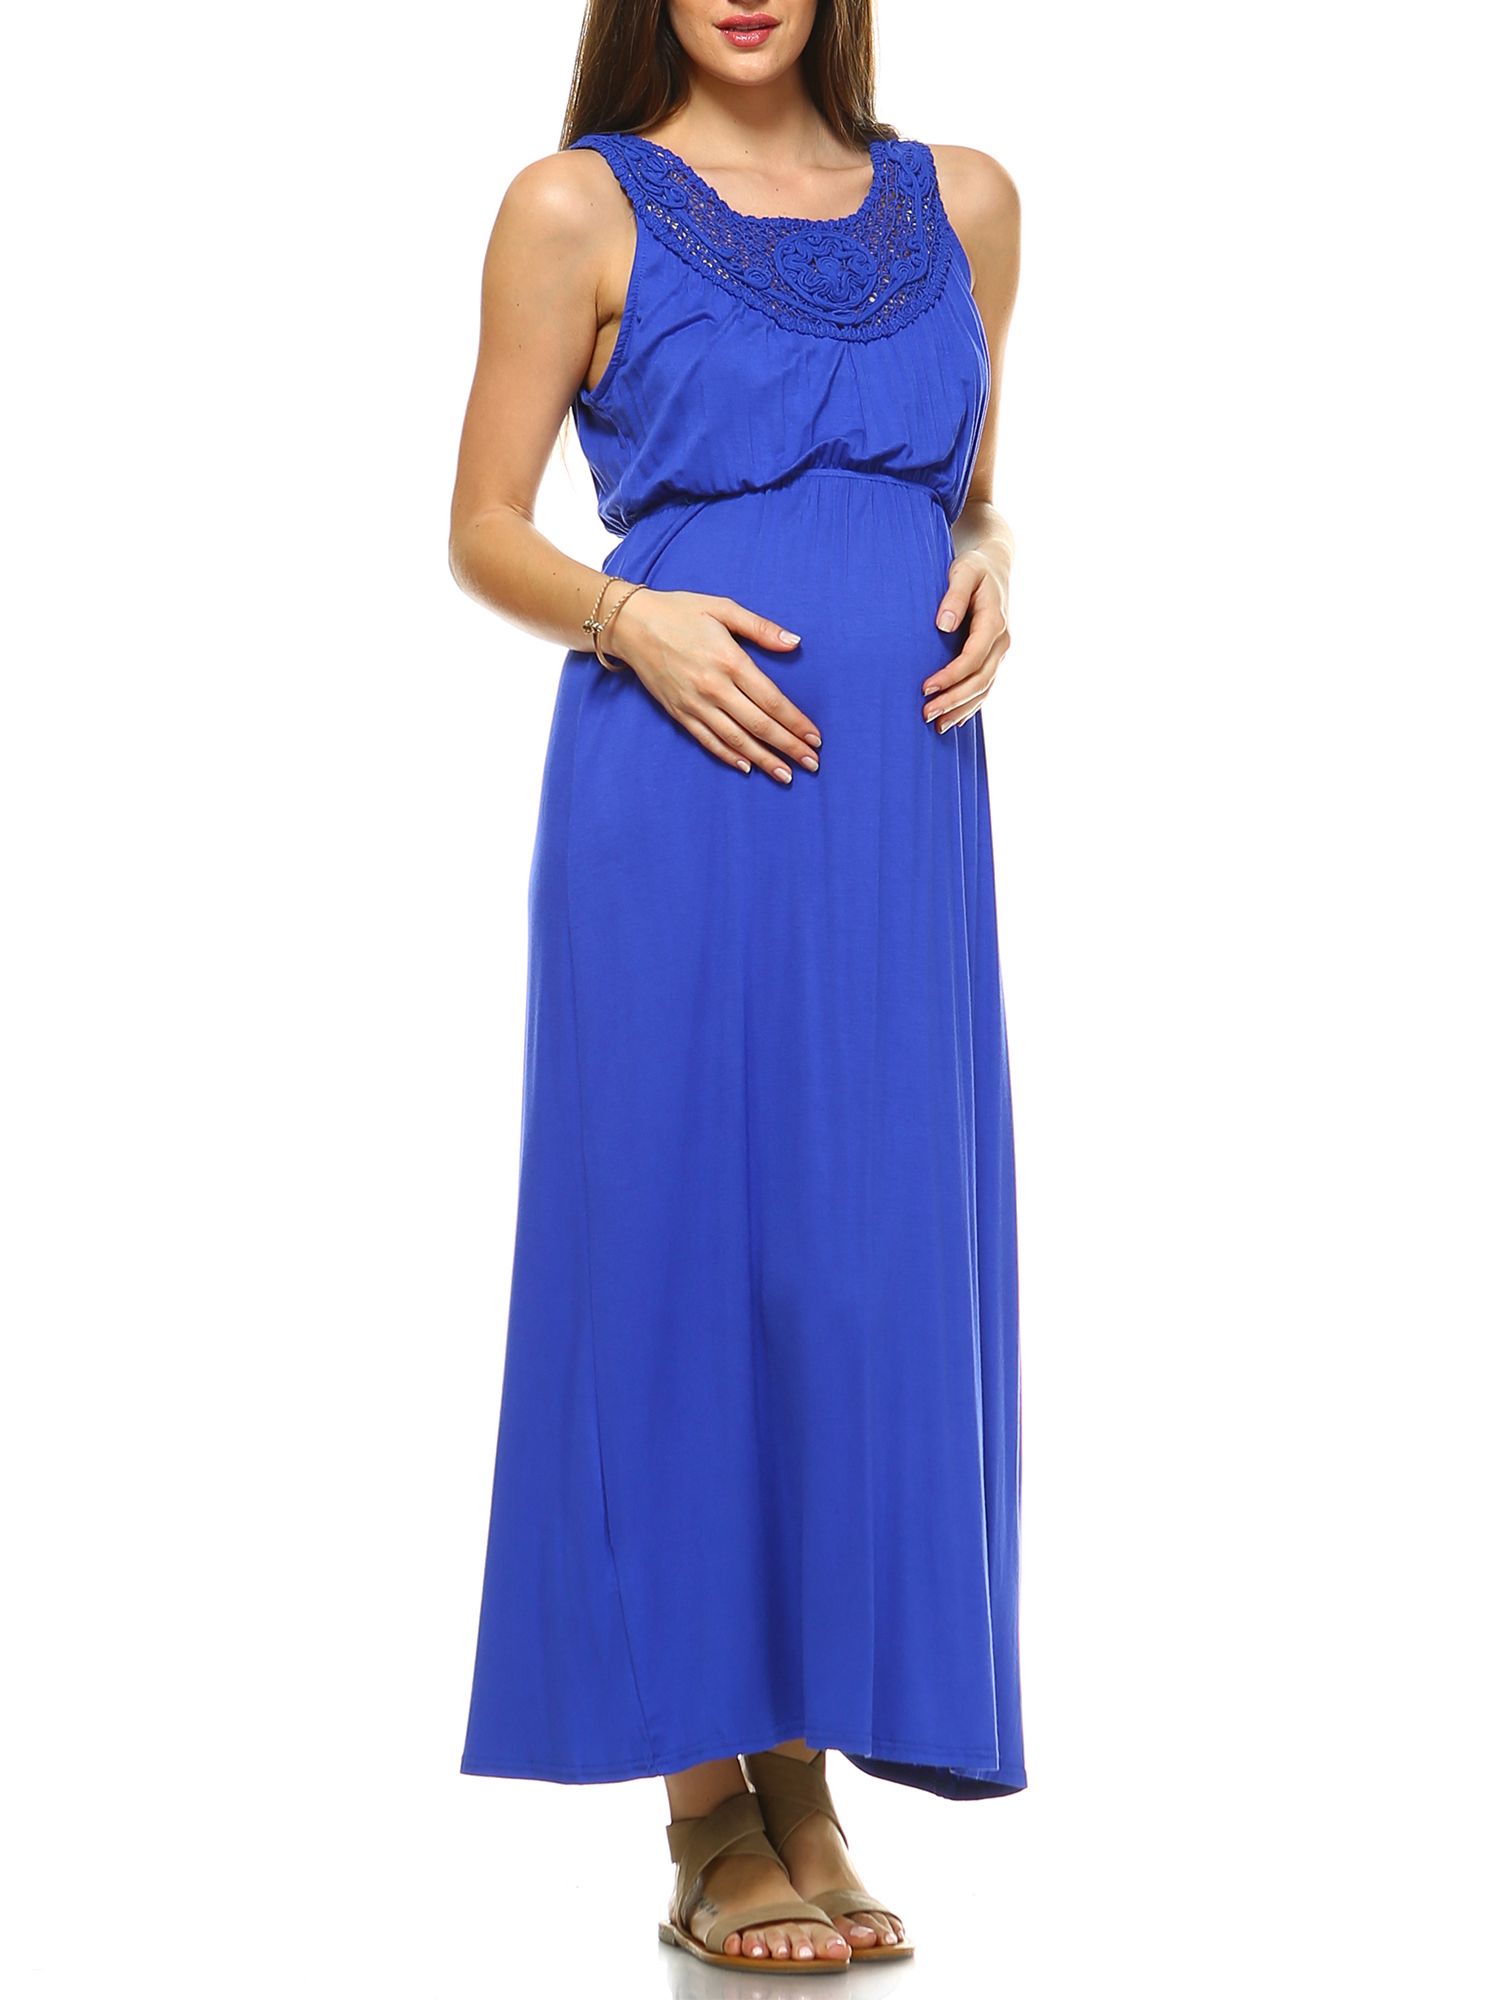 Women's Maternity Crochet Maxi Dress